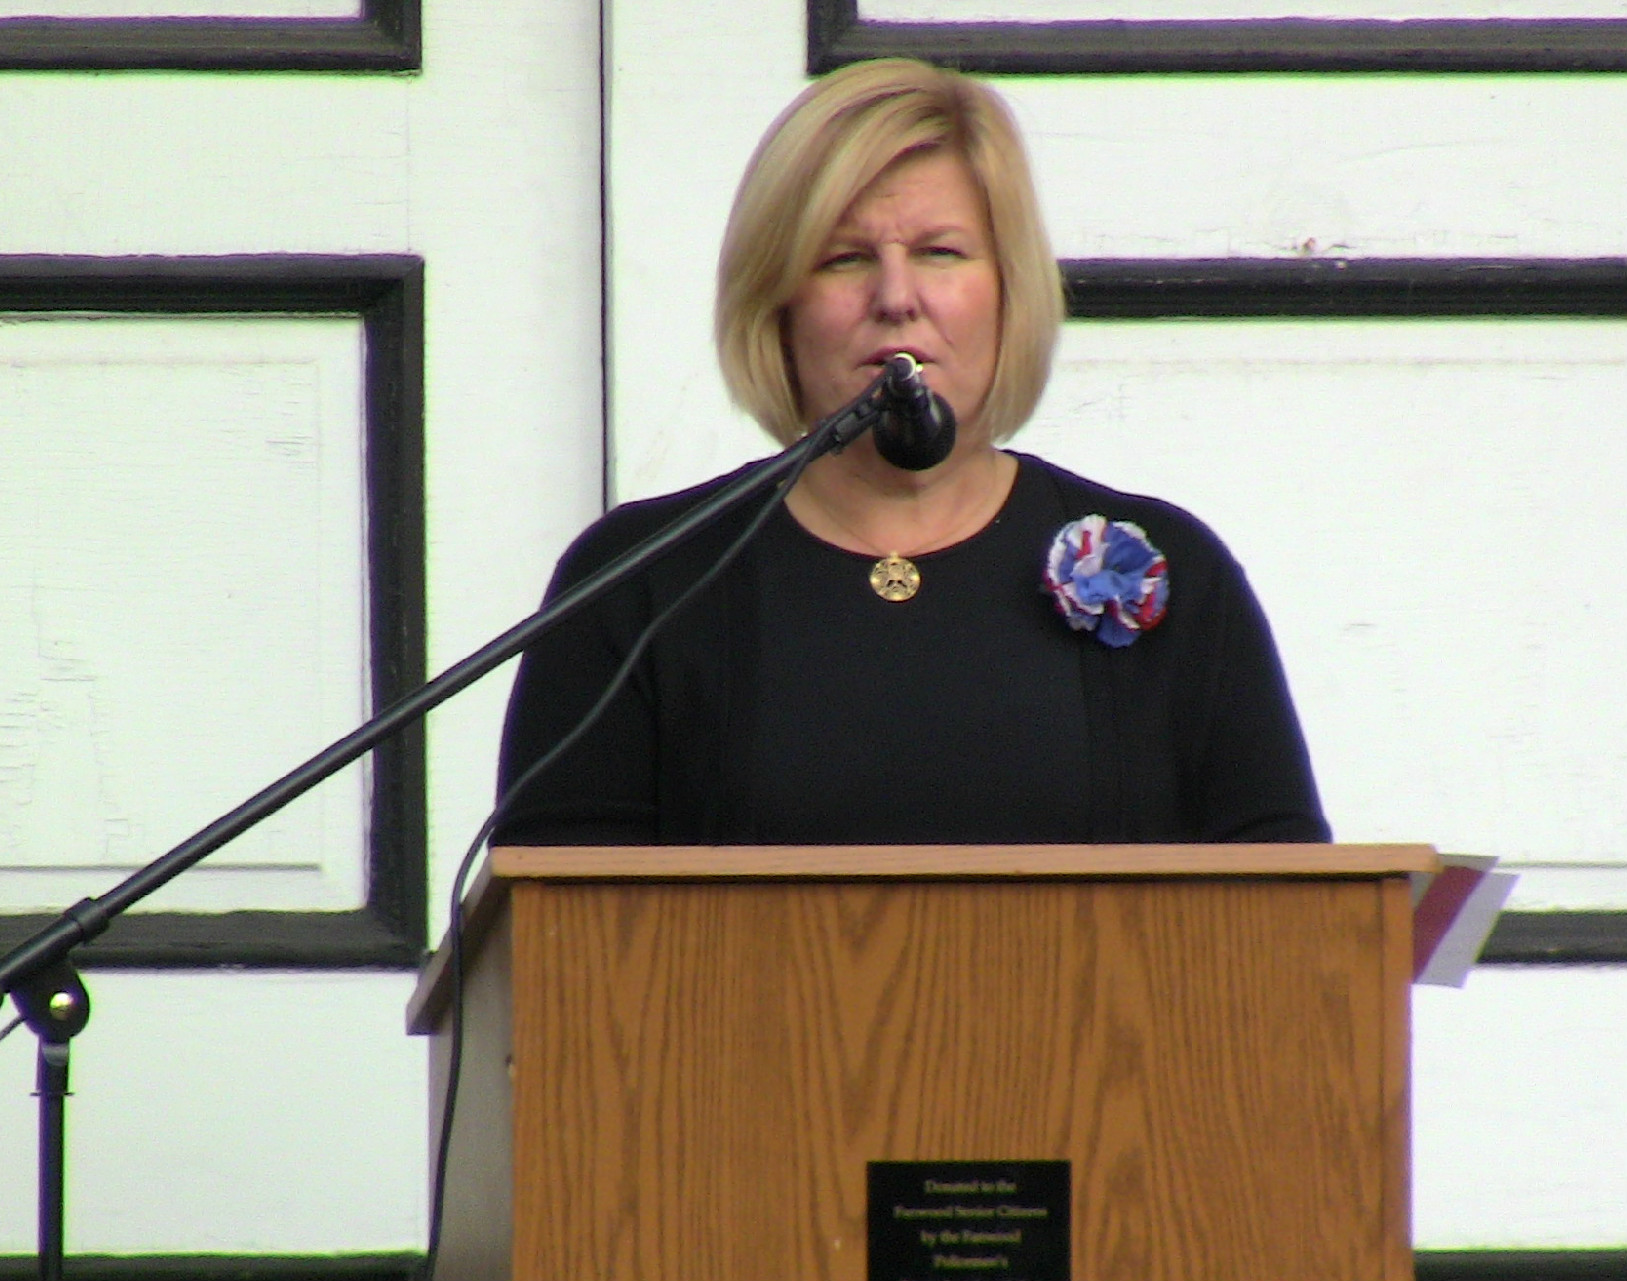 a84ee95de730aef04839_Colleen_Mahr_speaks_at_Veterans_Day_services.JPG